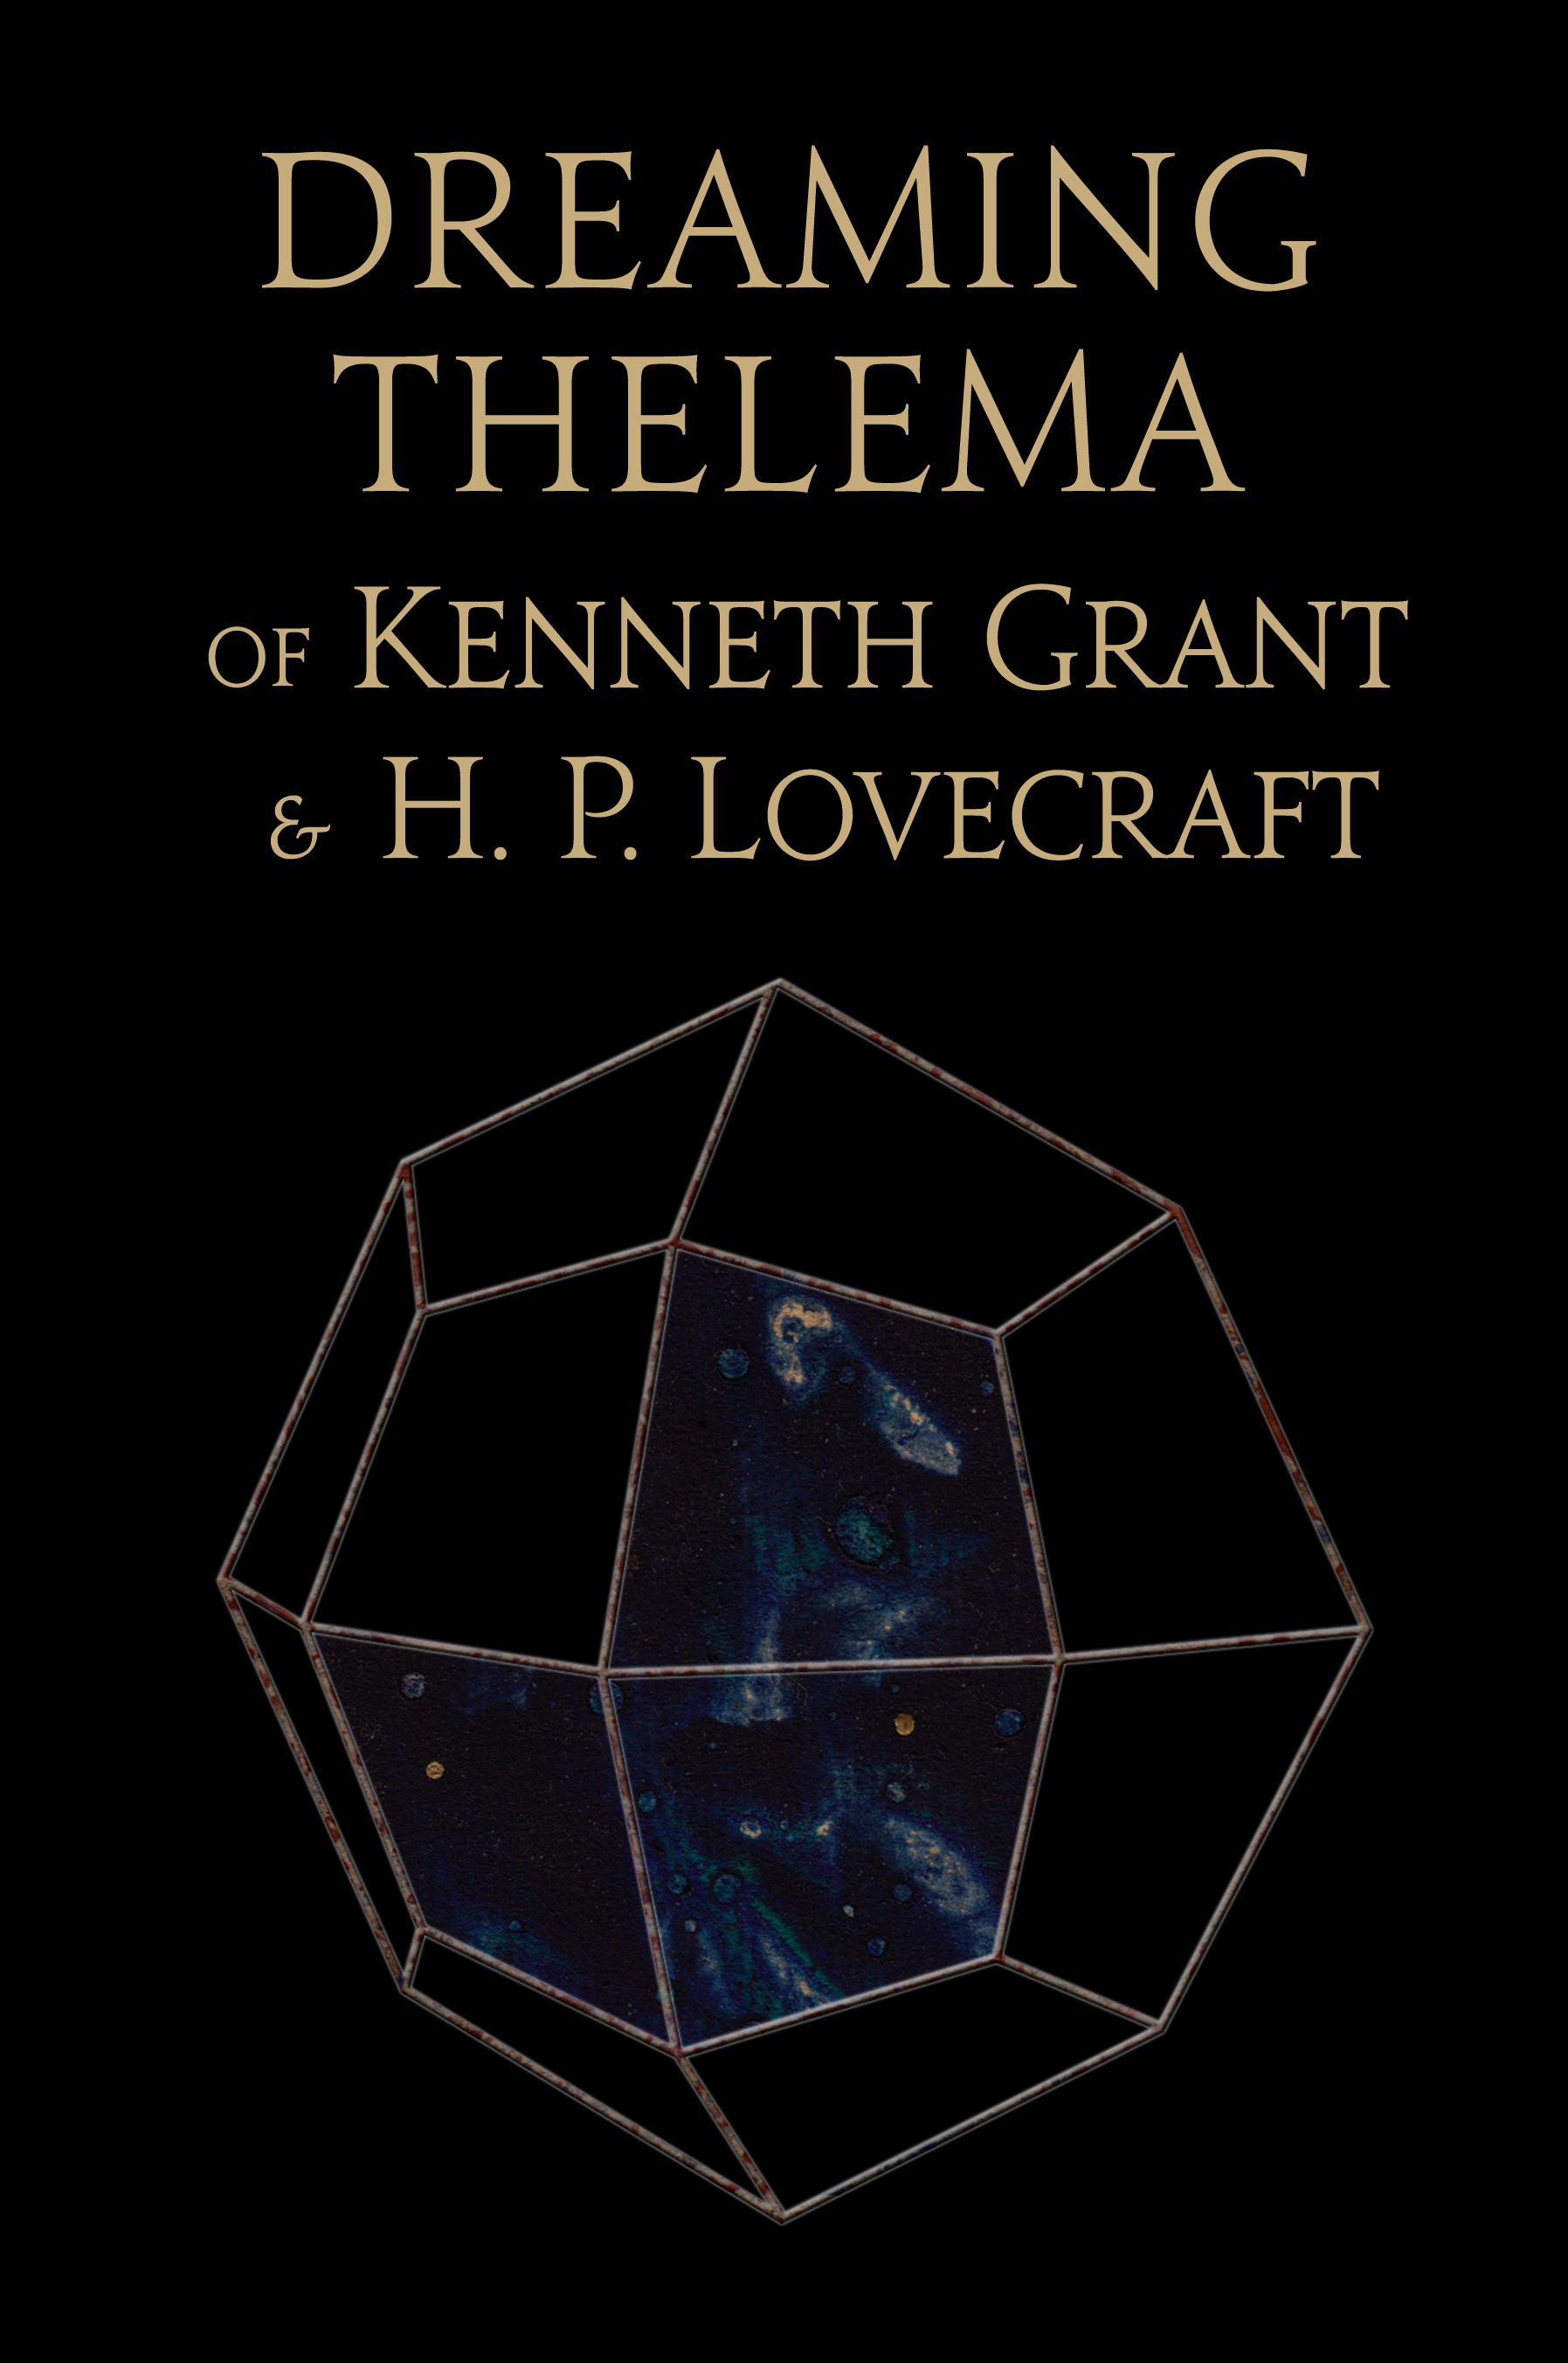 Ordo Astri Books: Dreaming Thelema of Kenneth Grant and H.P. Lovecraft